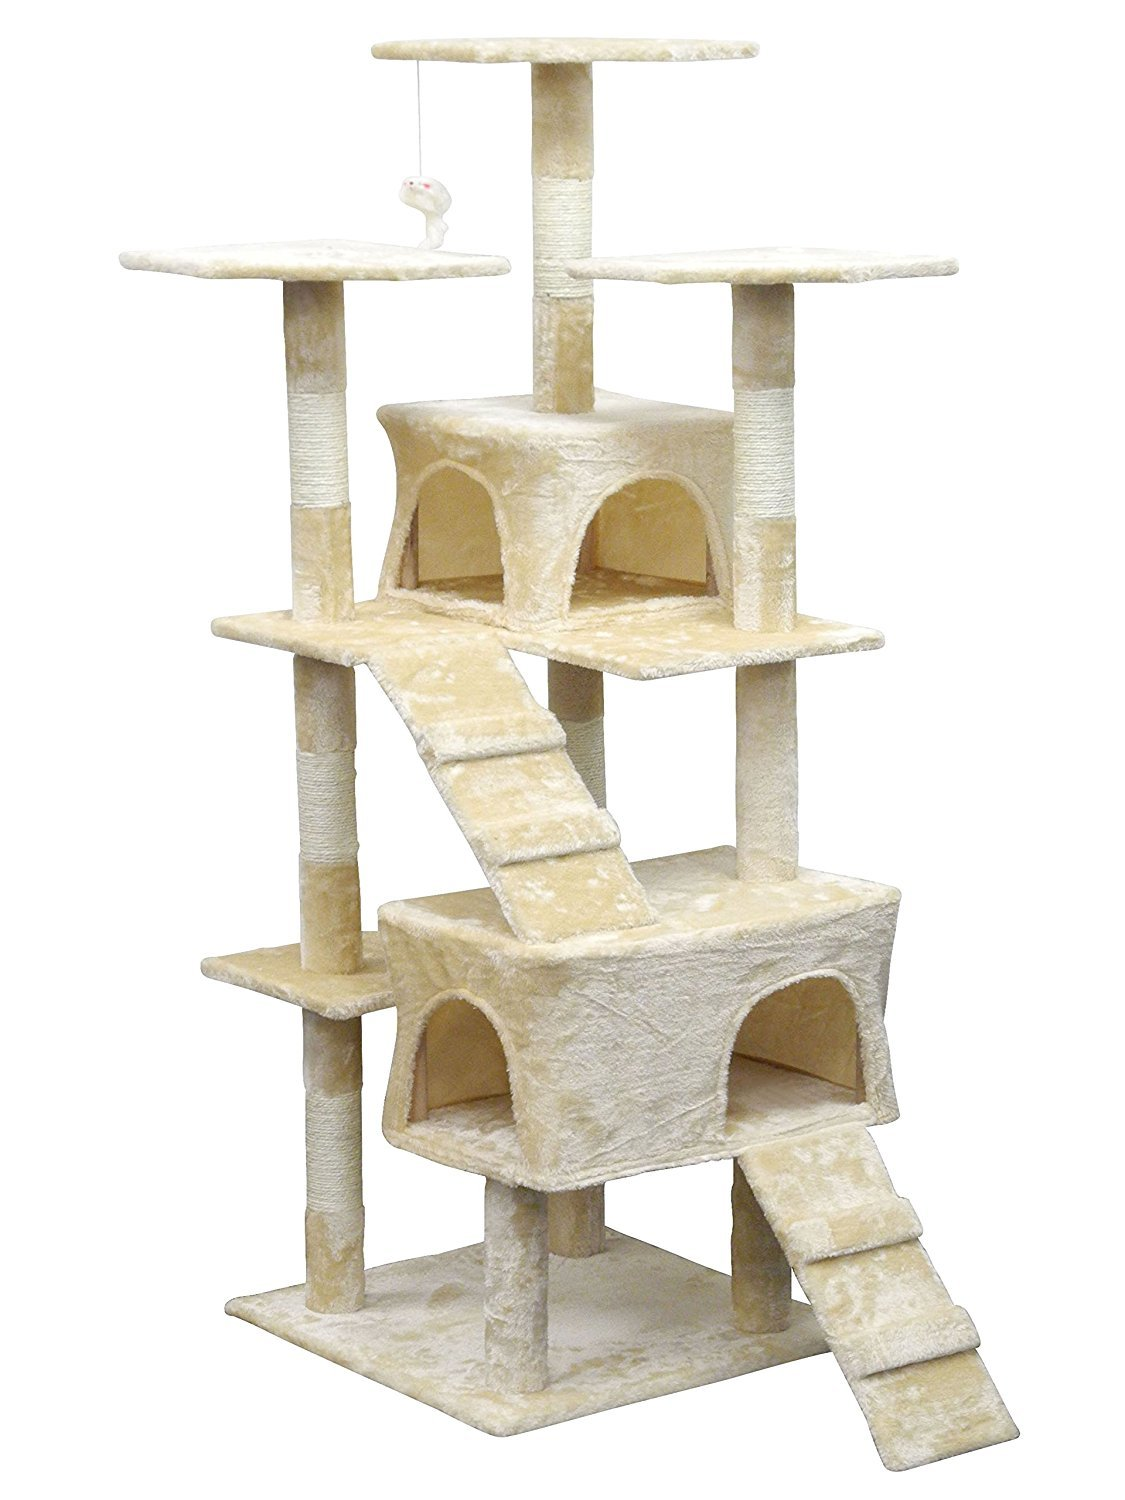 Homessity HC-001 Light Weight Economical Cat Tree Furniture by Homessity